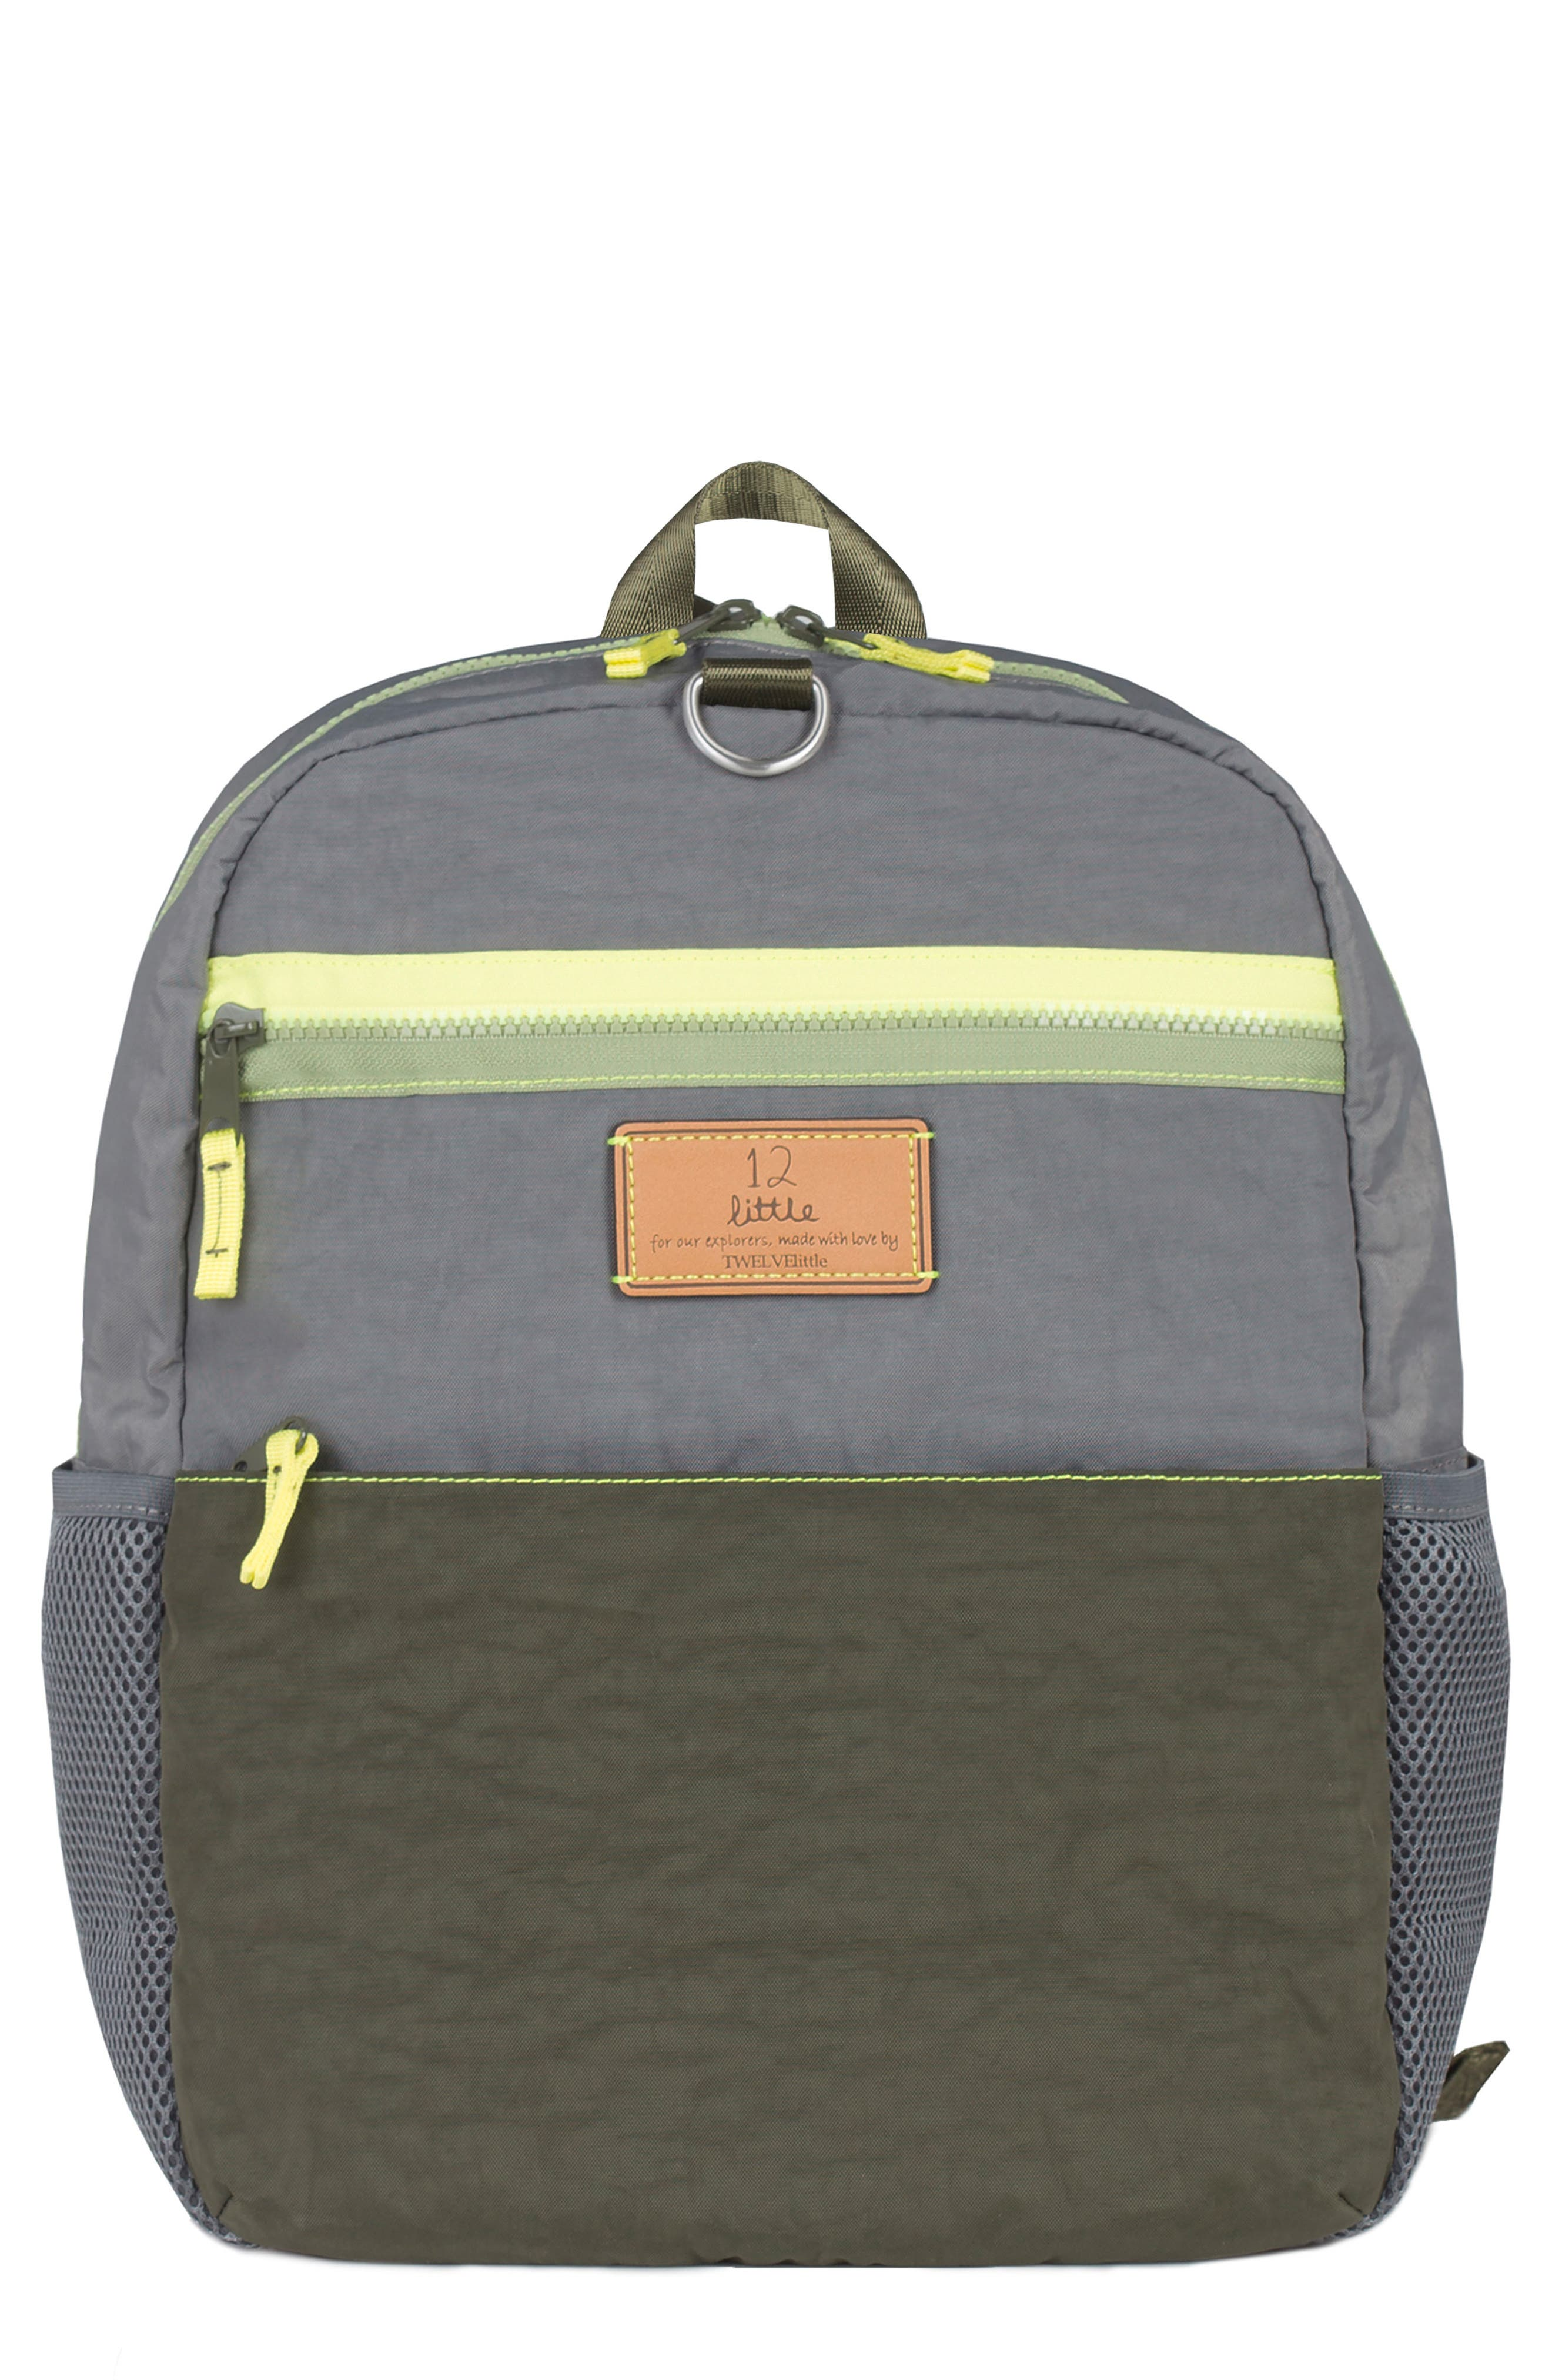 Courage Backpack,                             Main thumbnail 2, color,